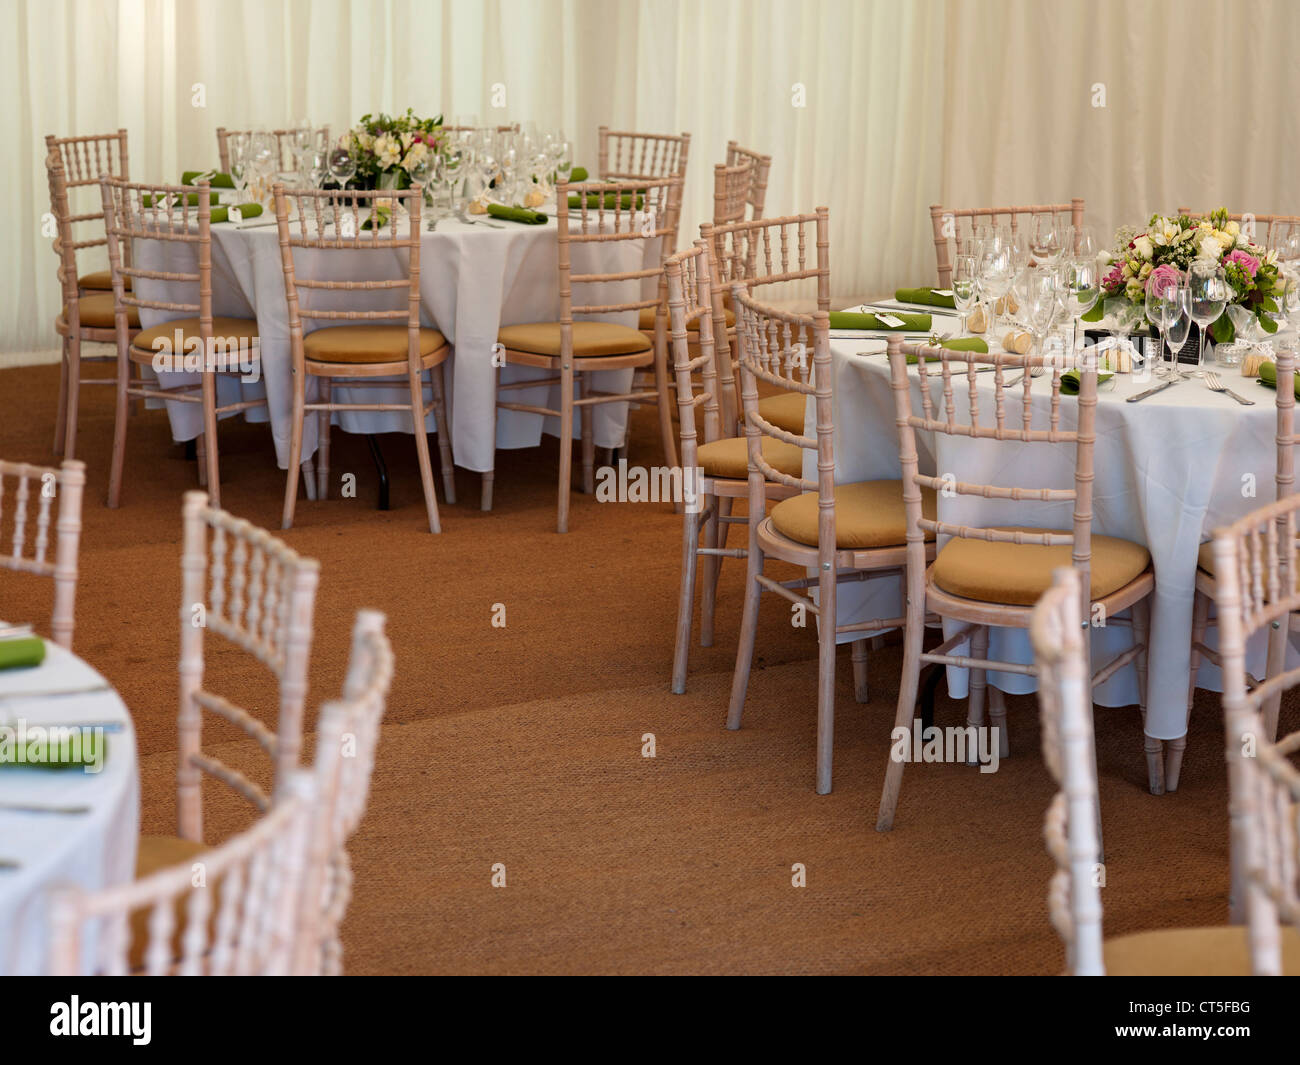 Tables arranged before wedding guests arrive - Stock Image